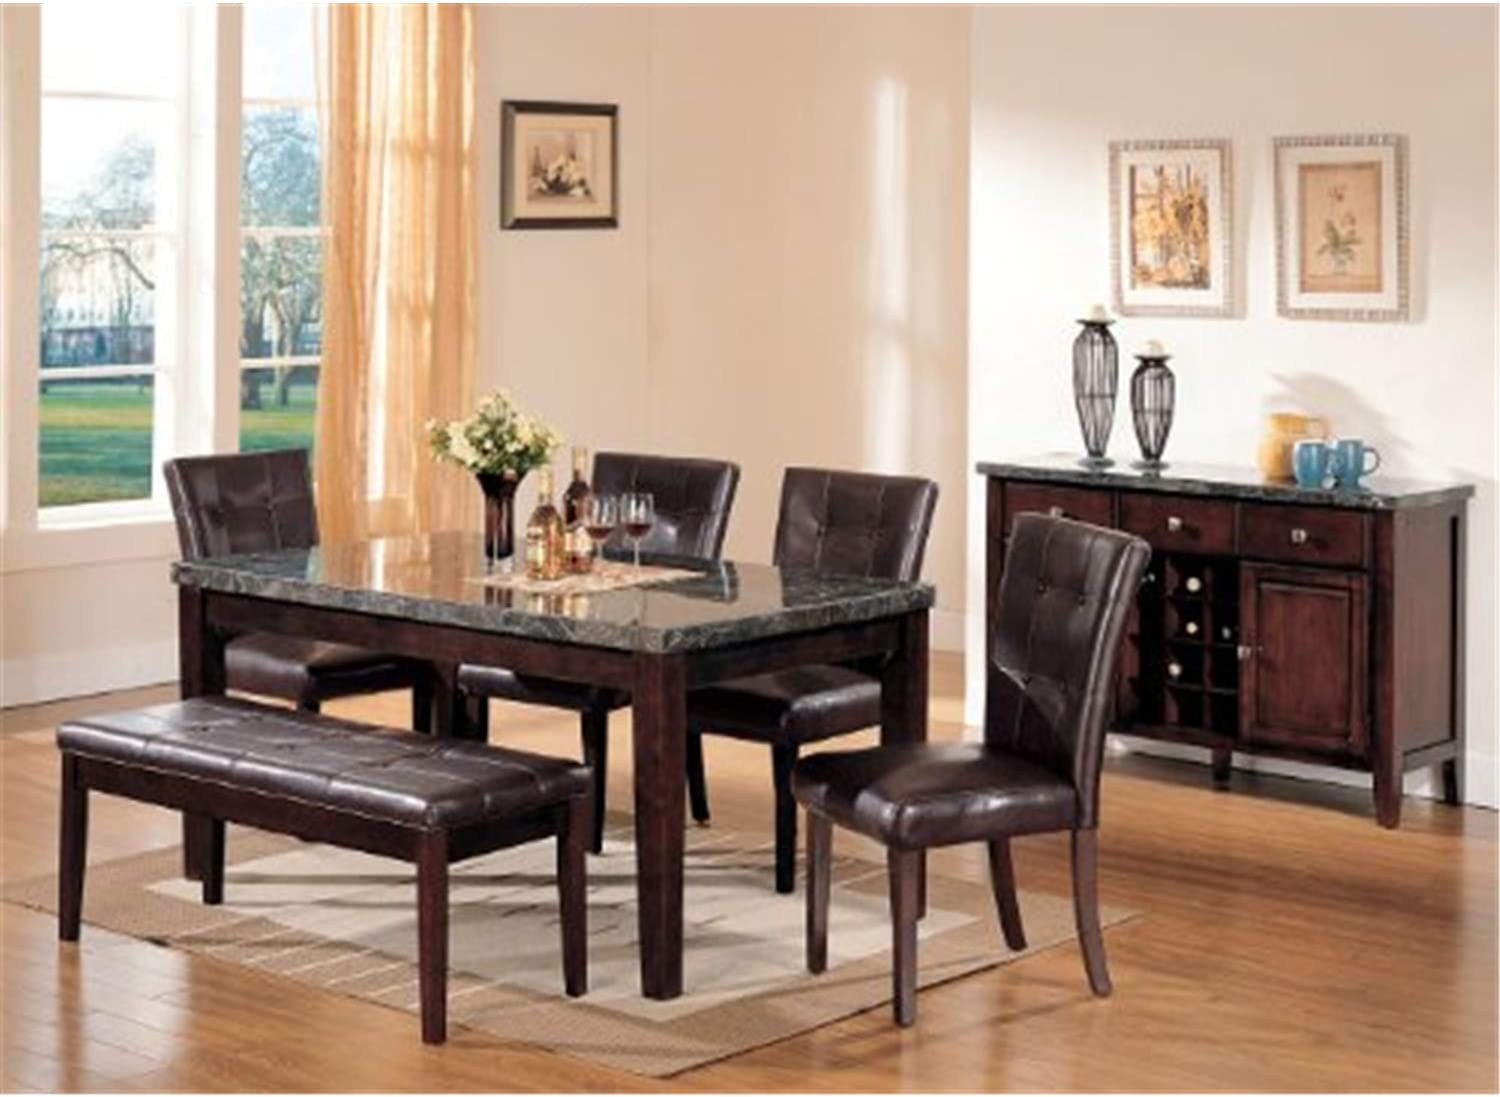 ACME Danville Bench - Espresso 07069 Walnut Don't miss the campaign Raleigh Mall PU